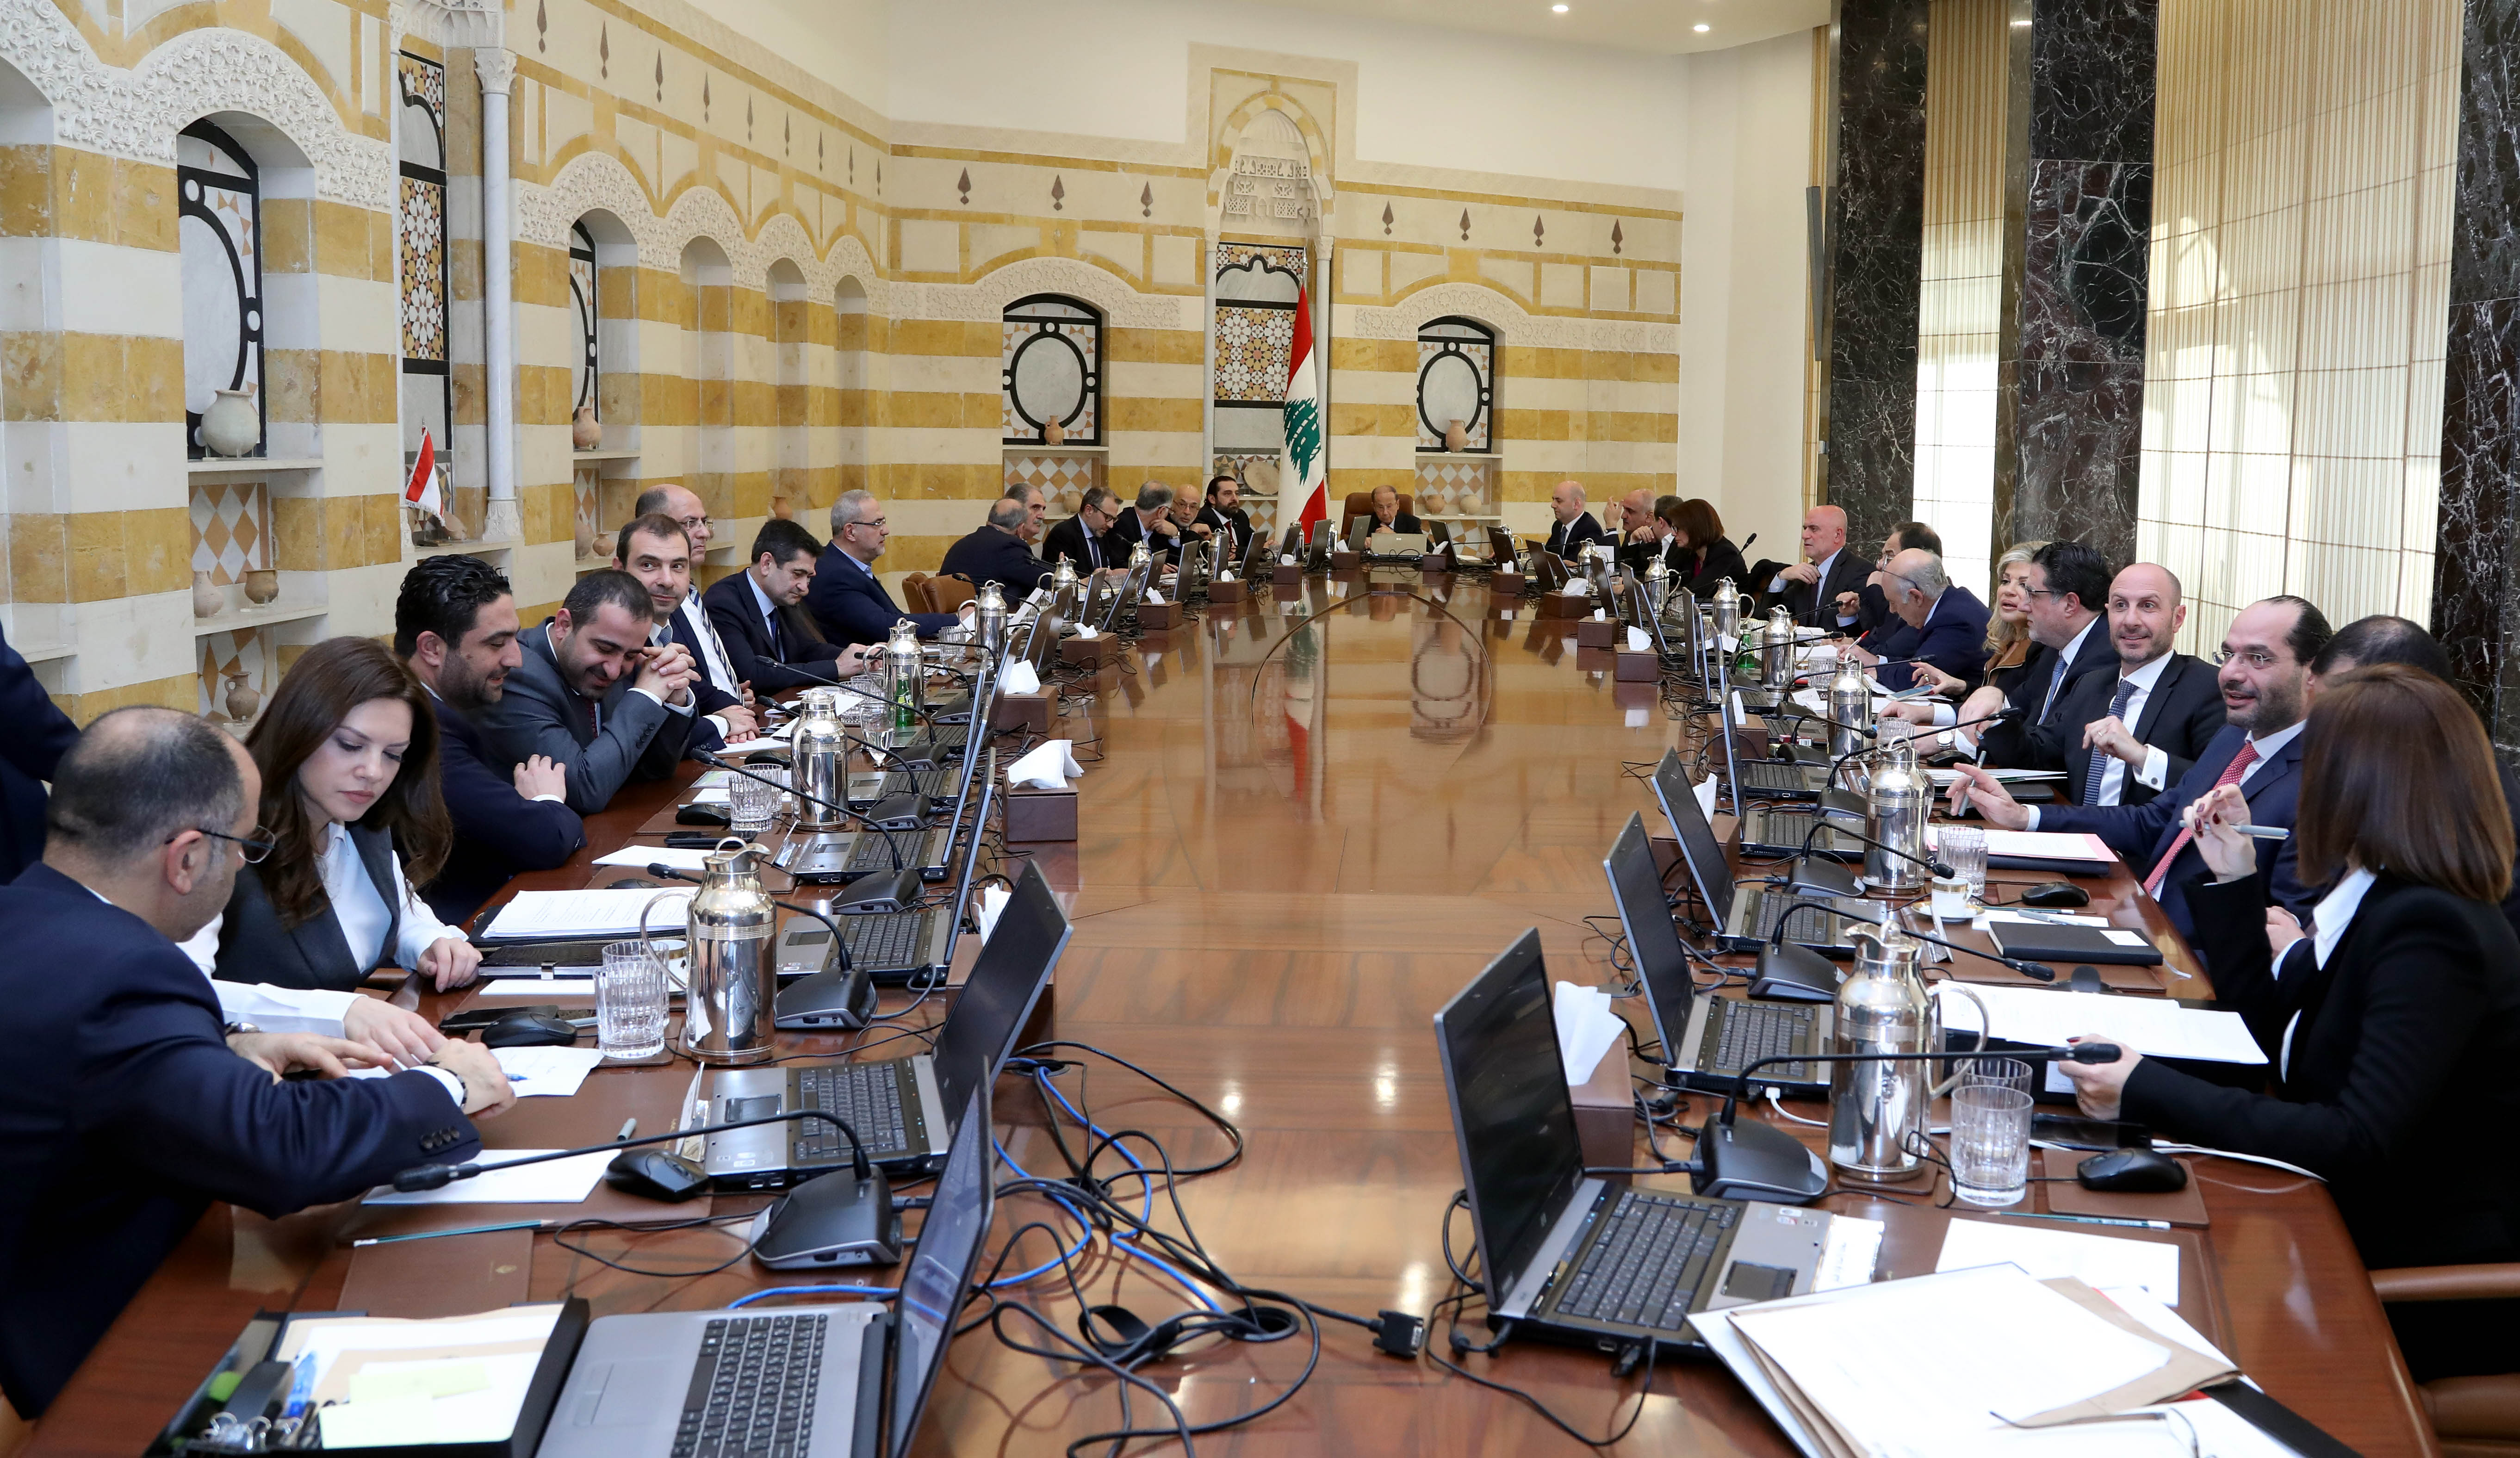 7 - Ministerial Council 1